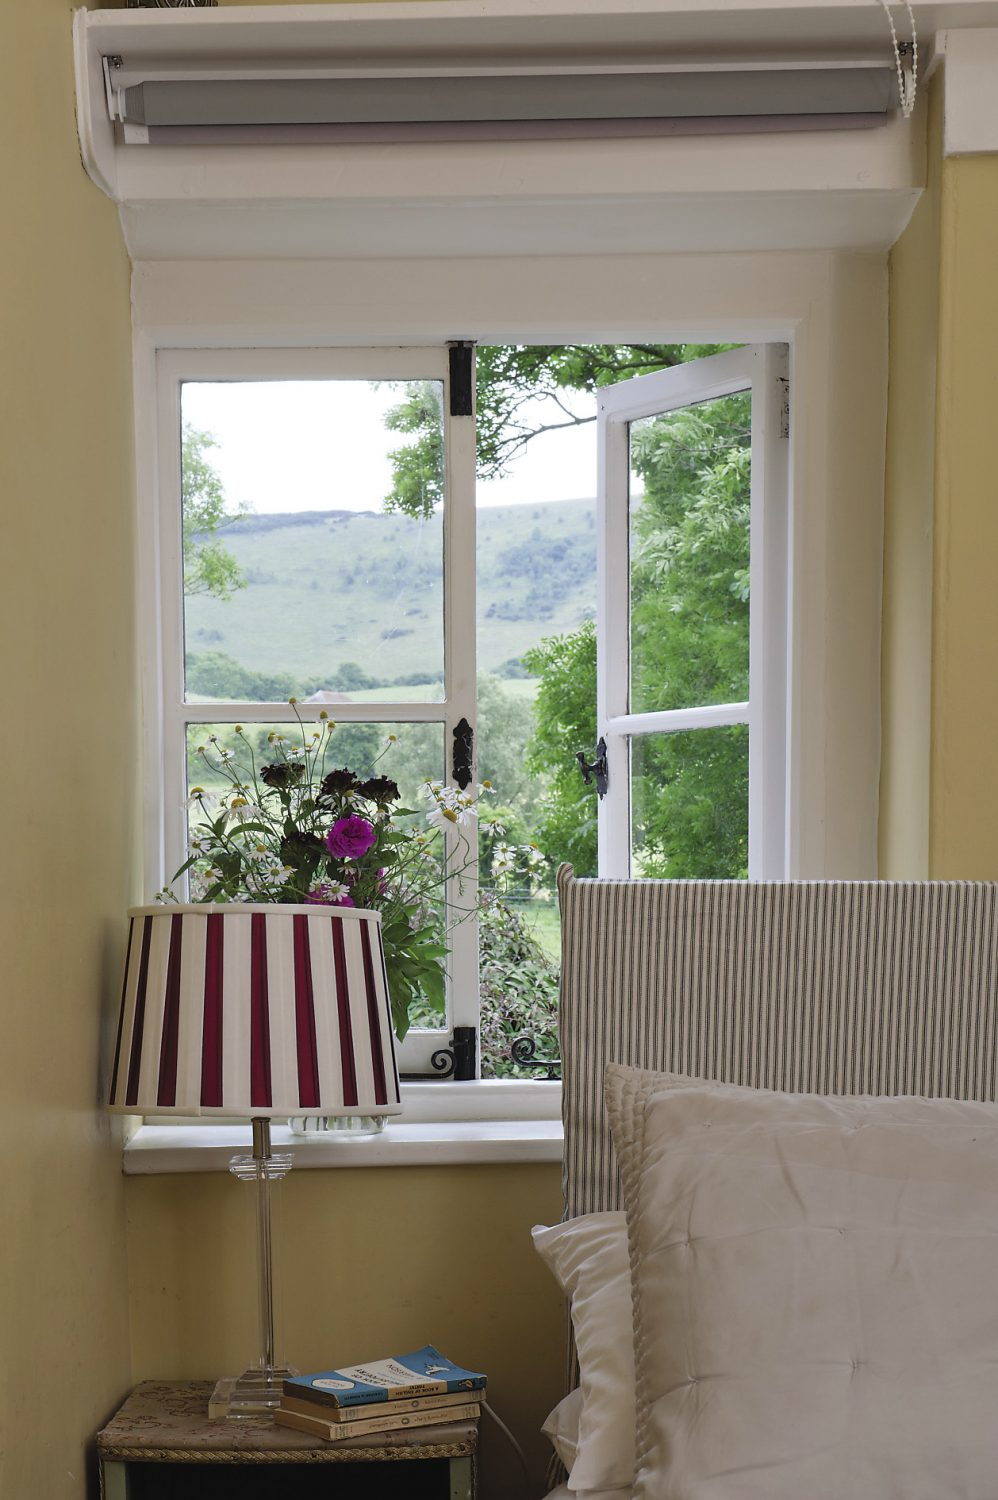 The guest bedrooms and bathrooms are decorated in varying shades of olive and moss green and are all simply furnished with grey silk curtains, mahogany or painted chests of drawers and adorned with simple posies of flowers cut from the garden